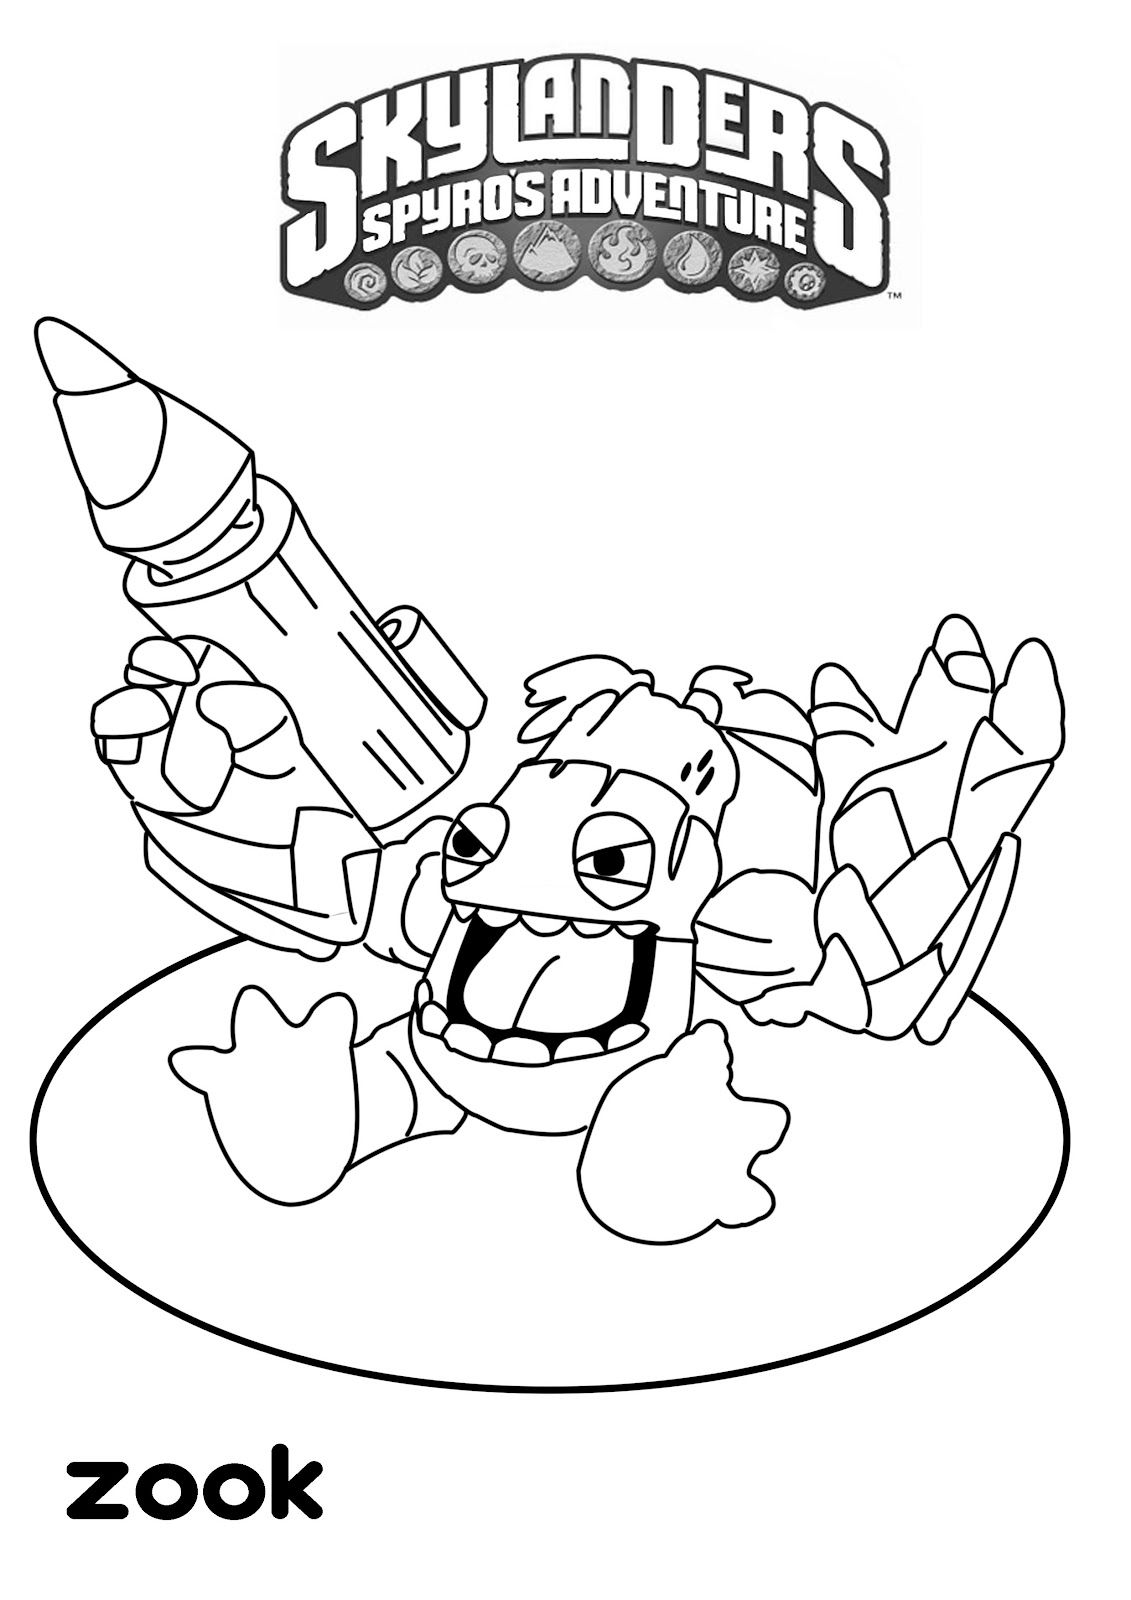 Coloring Pages Printable Skylander Coloring Pages 1000 images about skylanders on pinterest coloring pages and portal